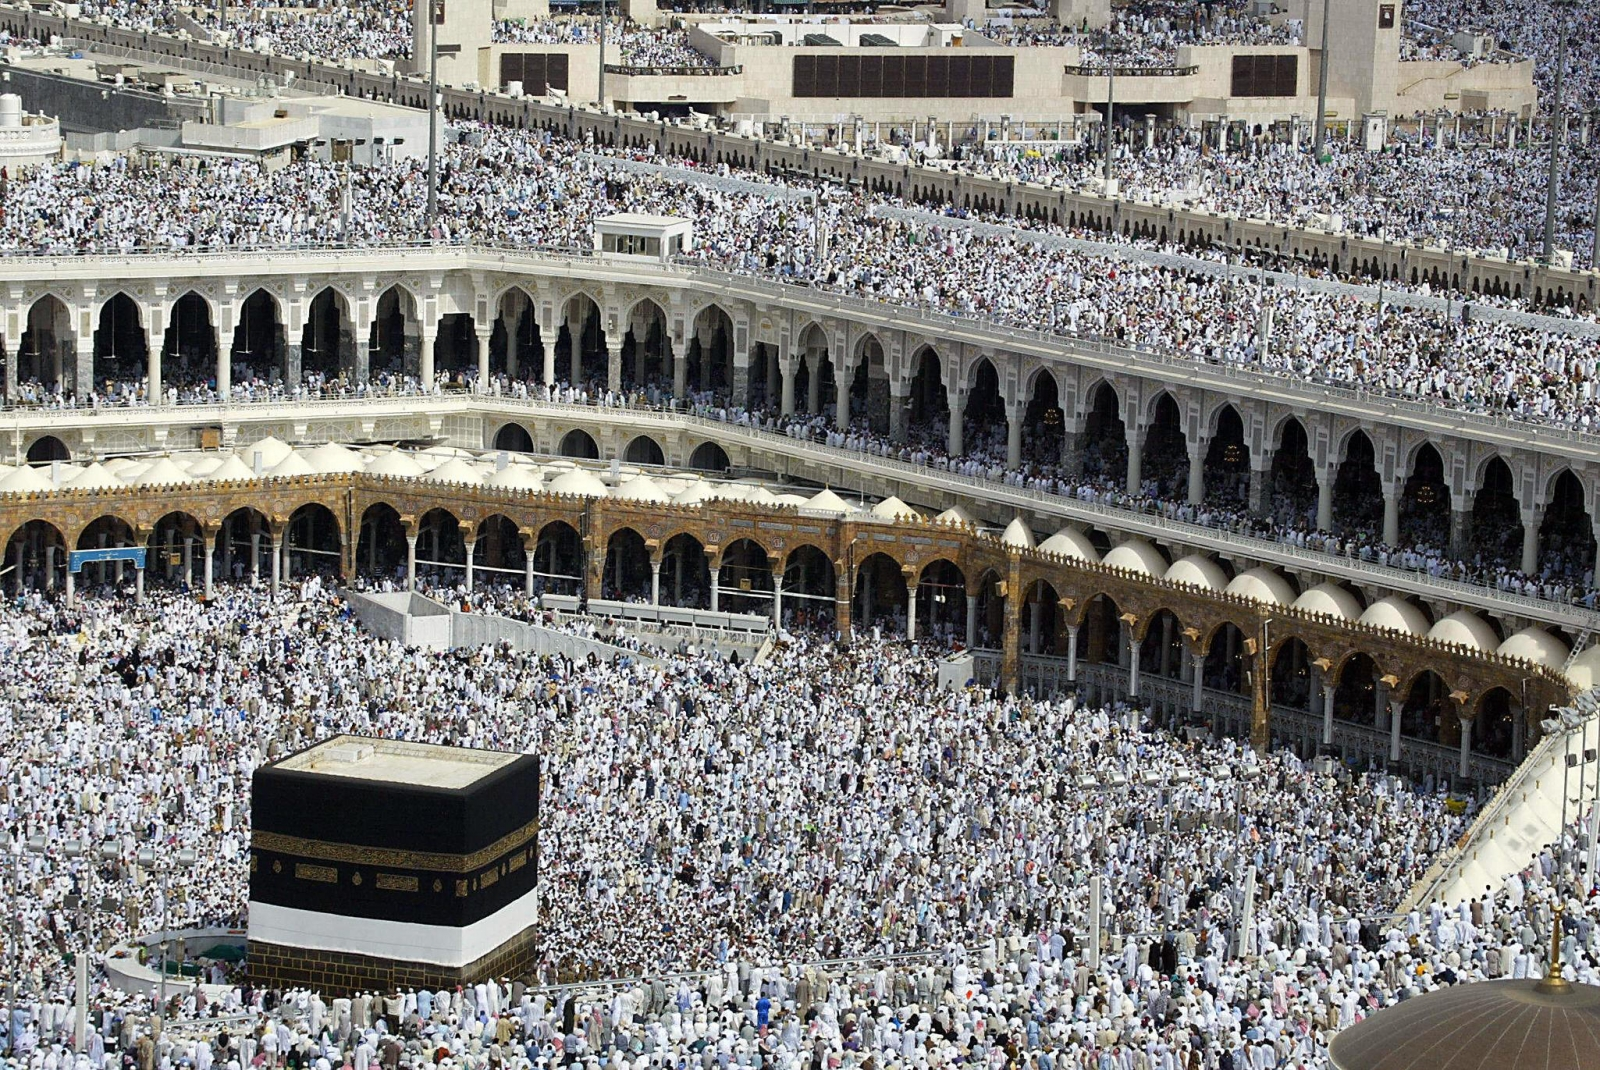 Hajj 2016: When does the Islamic pilgrimage to Mecca begin?